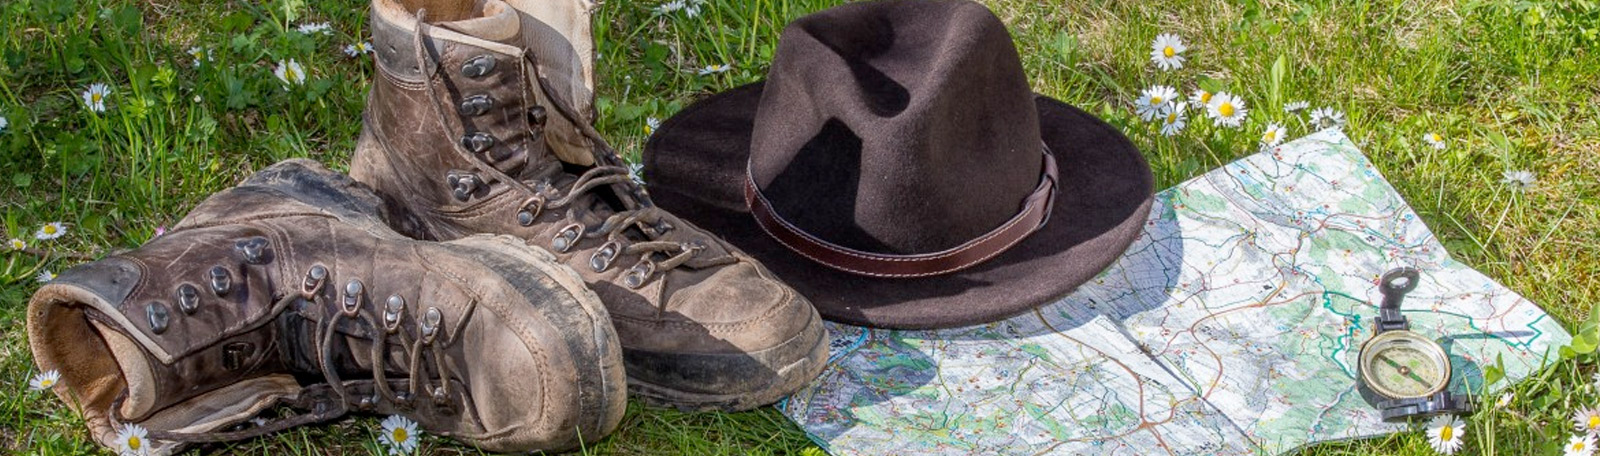 Footwear - Hiking & Hunting Boots Category